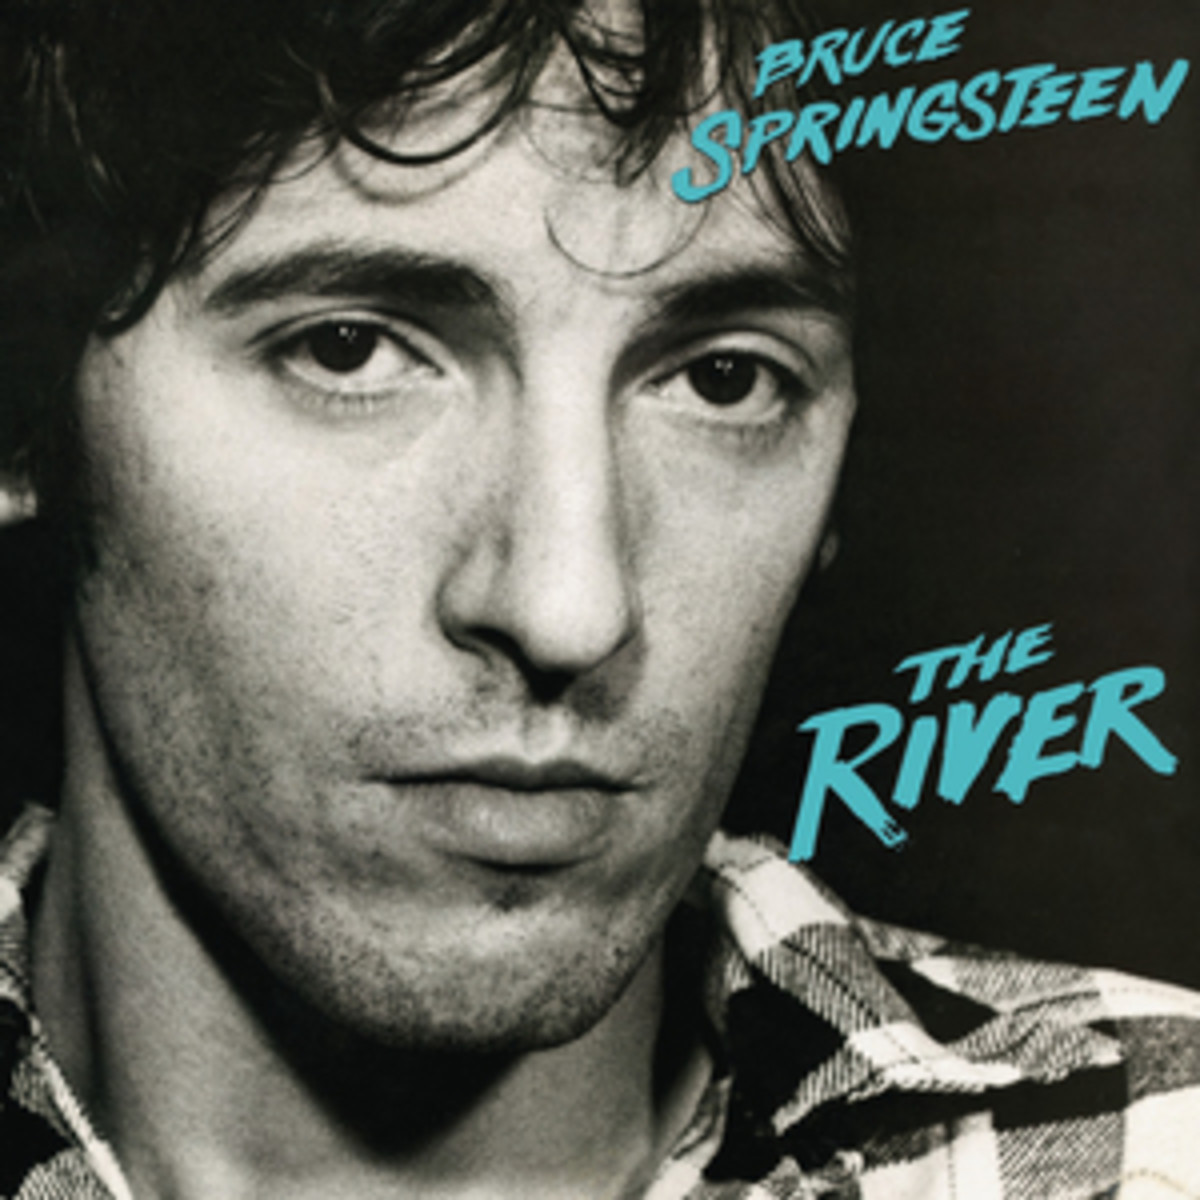 Times change, technology changes, human nature does not change. Jude The Obscure teaches us that despite all the bells and whistles, we remain hopelessly biological beings. 100 years after Jude's demise, Springsteen was singing the same sad song